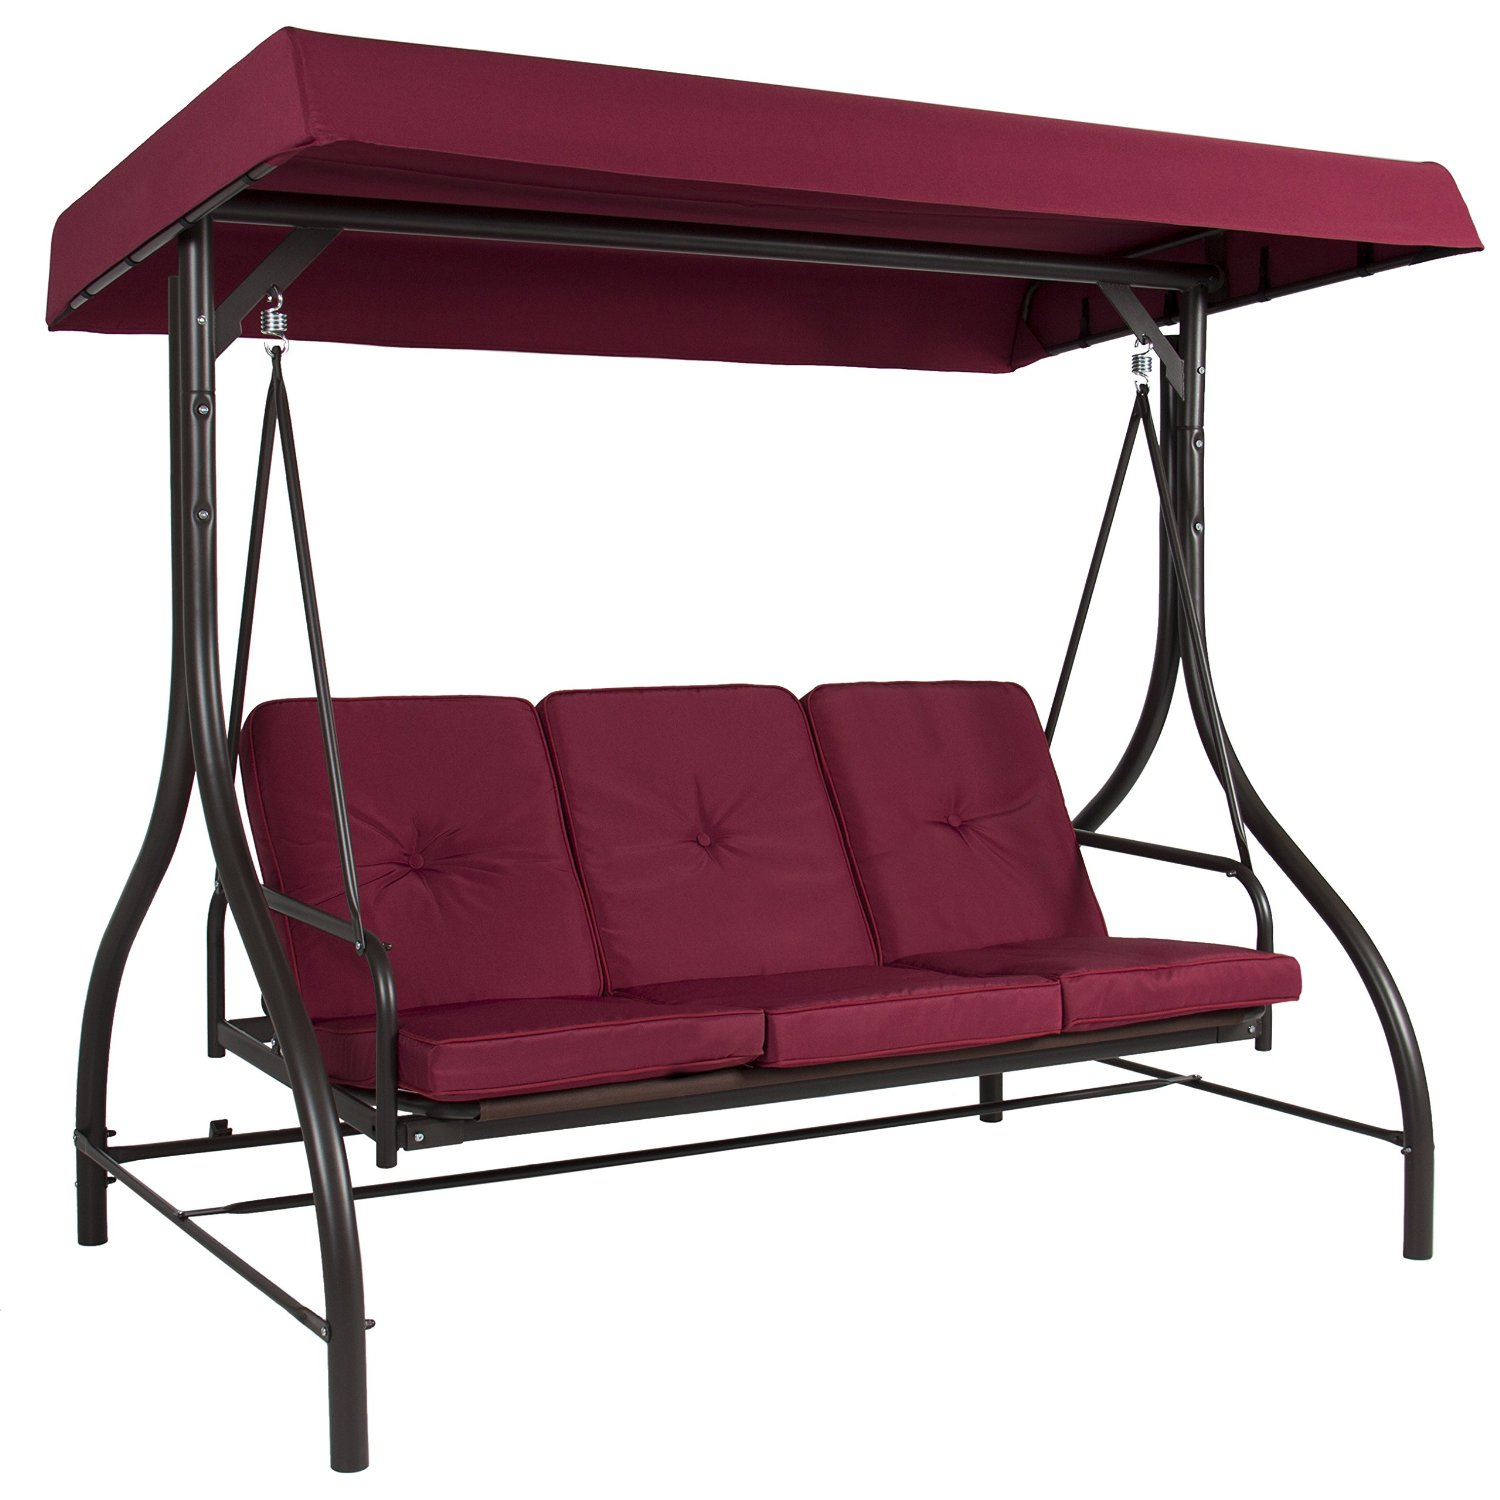 Outdoor Patio Swing Porch Bed Laydown Canopy Seat 3 Person Outdoor Yard  Burgundy